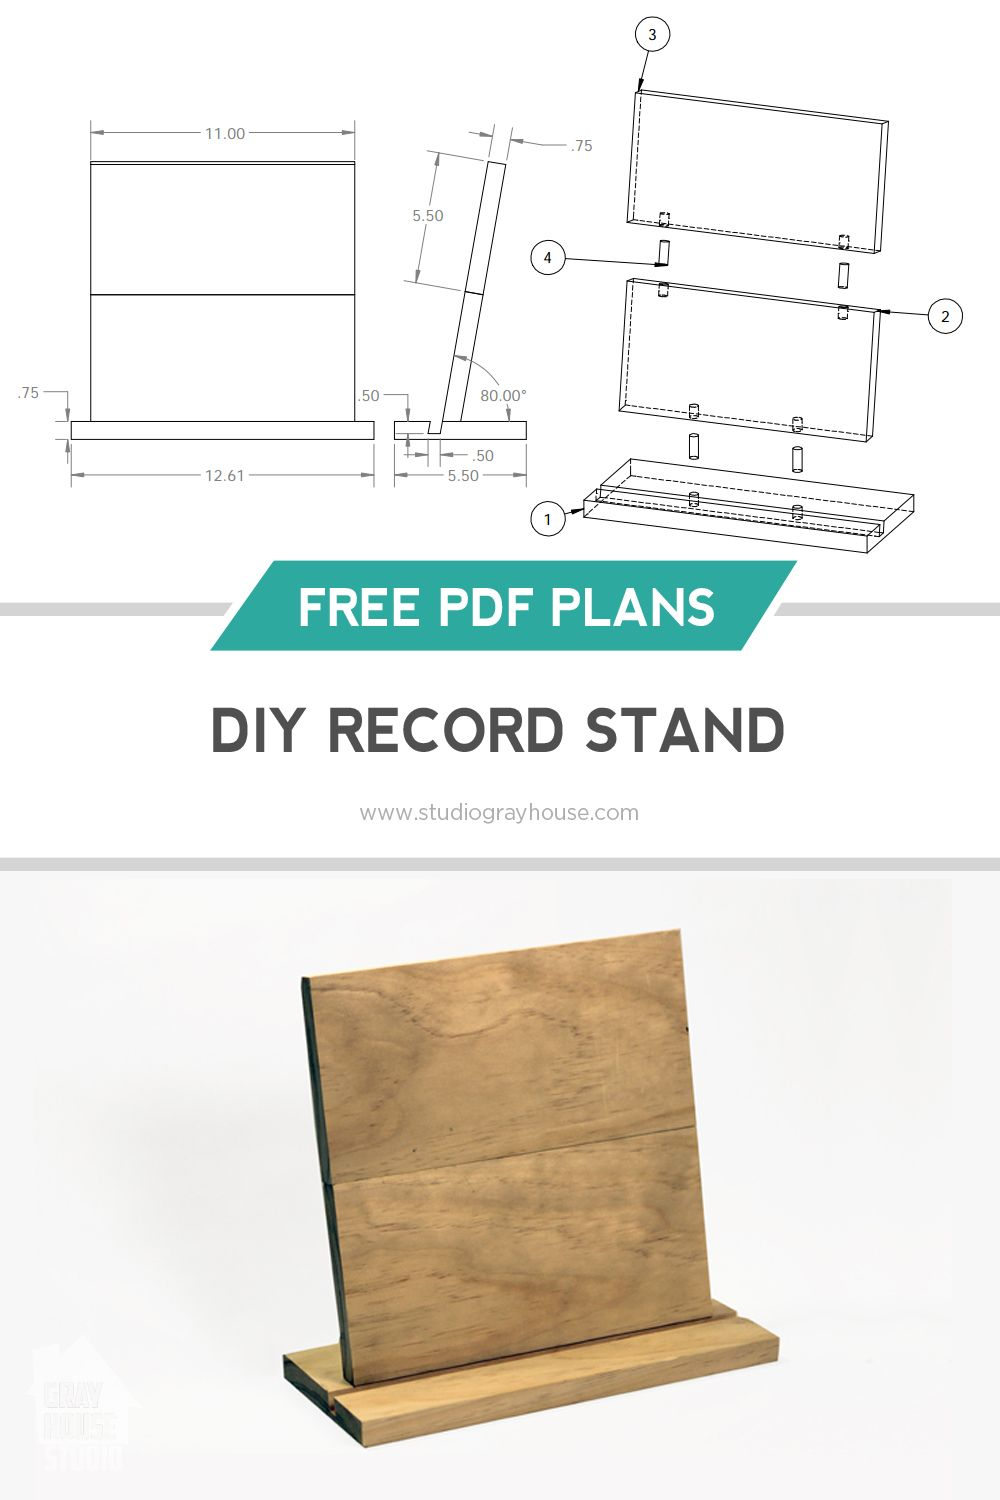 Album Cover Artwork Can Make For An Interesting Alternative To Traditional Art Make Your Own Diy R Record Stand Woodworking Ideas Pallets Vinyl Record Display